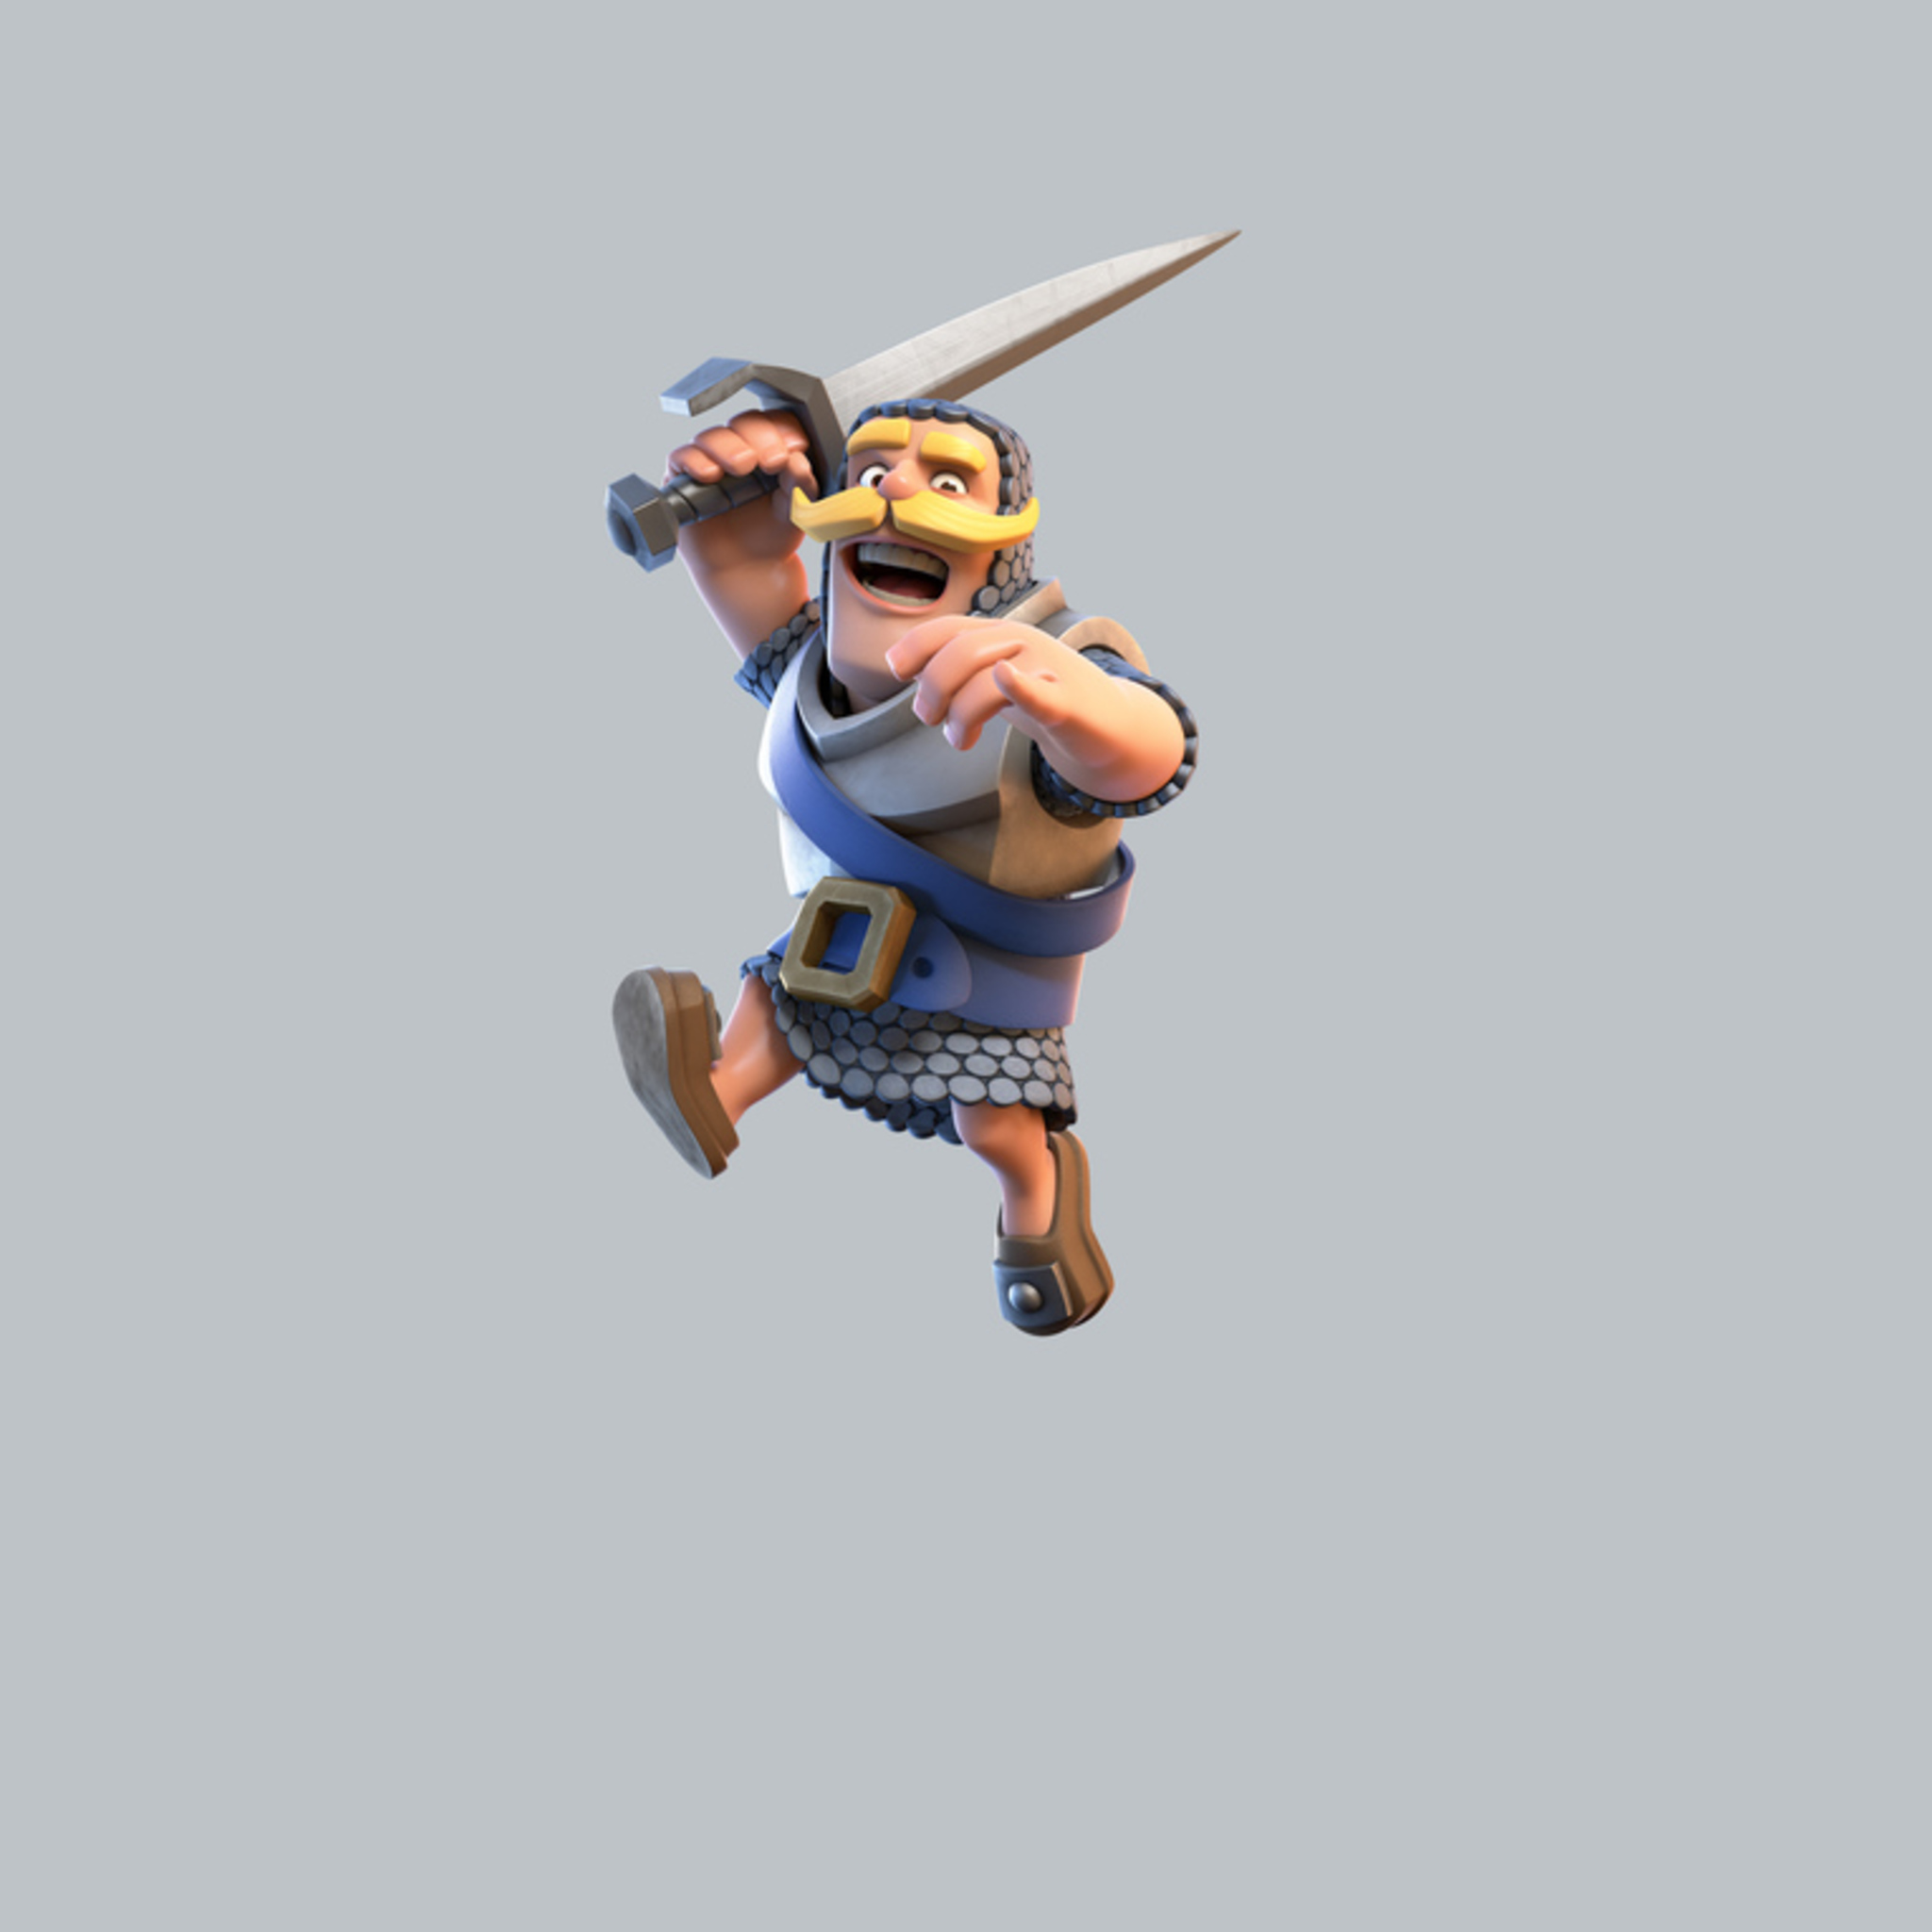 2048x2048 clash royale knight ipad air hd 4k wallpapers images backgrounds photos and pictures - Clash royale 2560x1440 ...